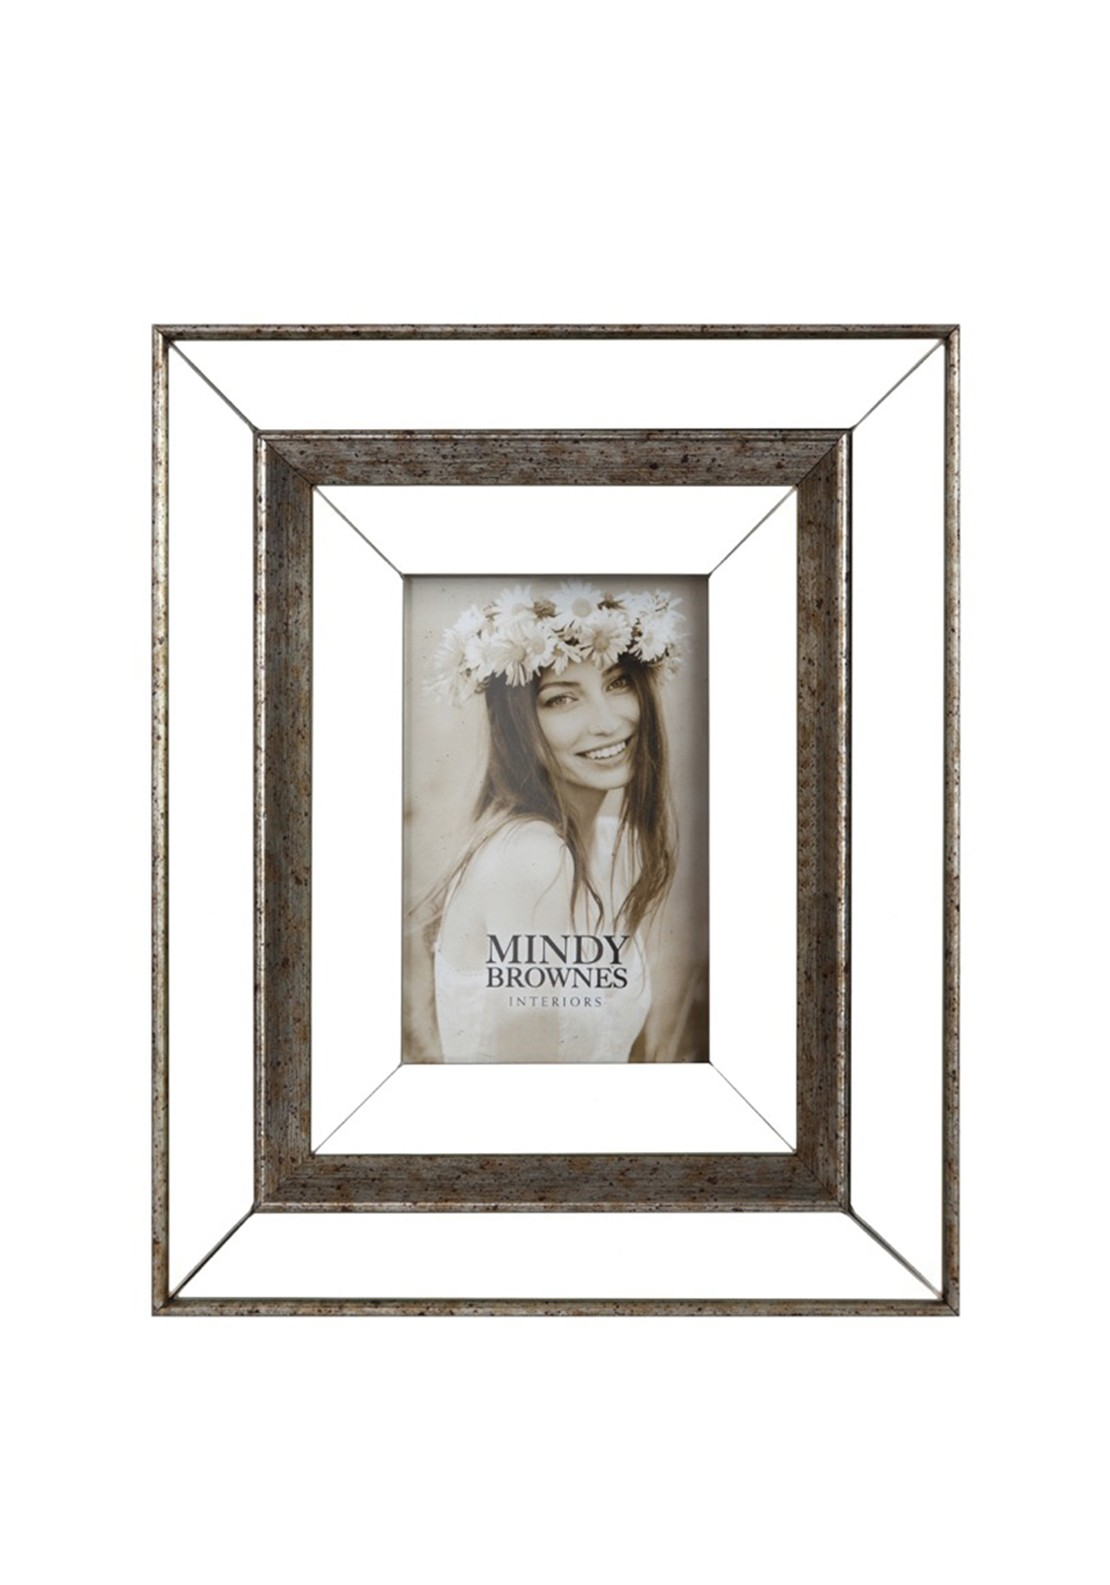 8X10 Photo Frame Mindy Brownes €39.95